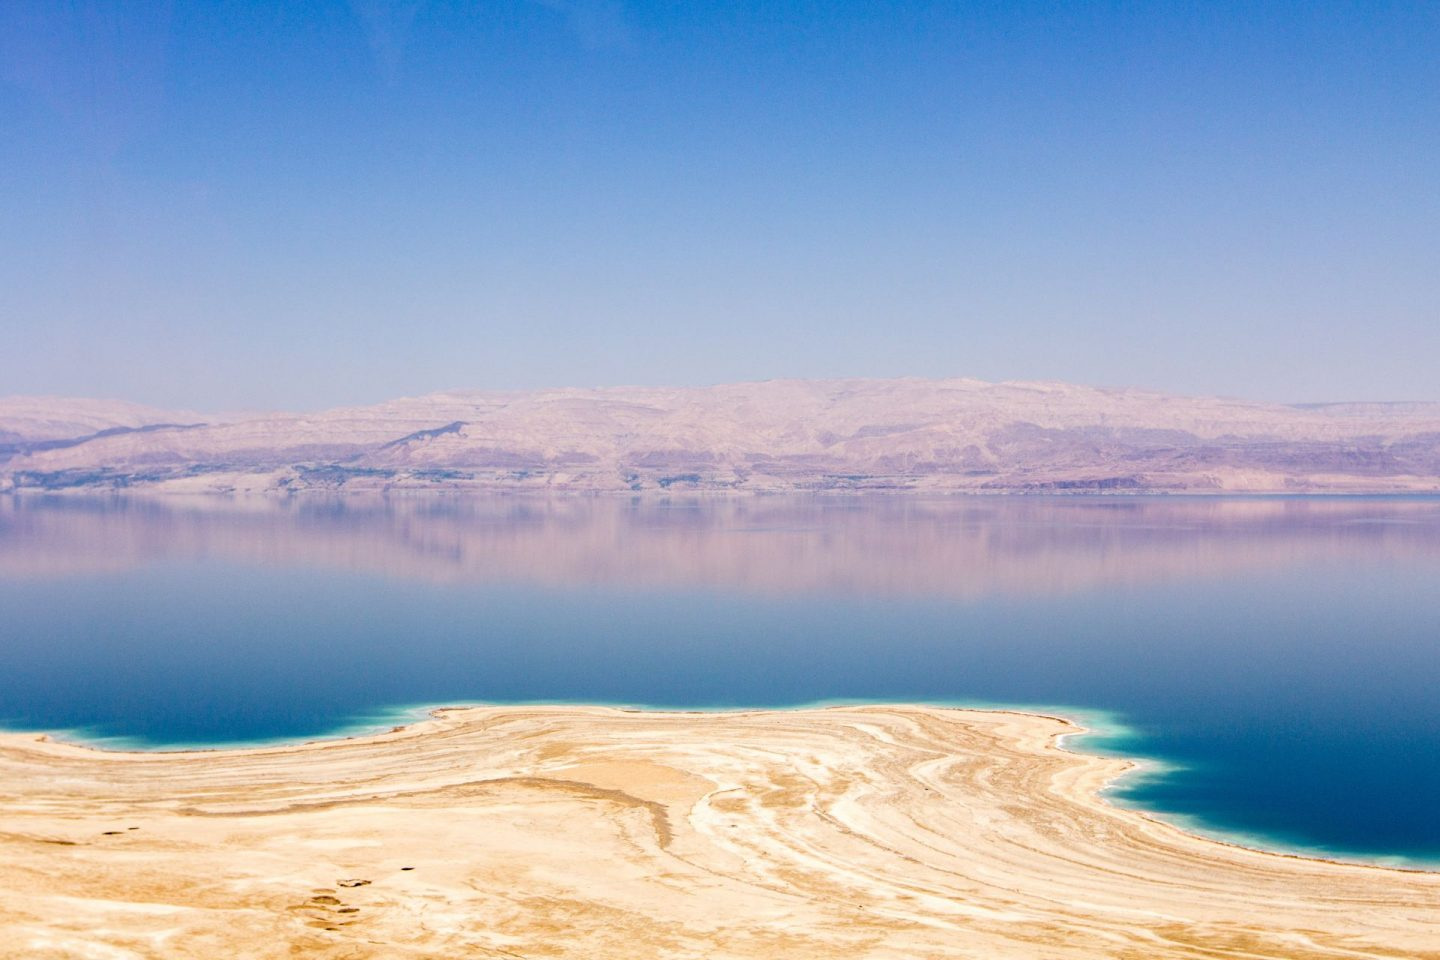 view over the dead sea in israel, lake with mountains in background, purple tones, 20 destinations to visit in 2020